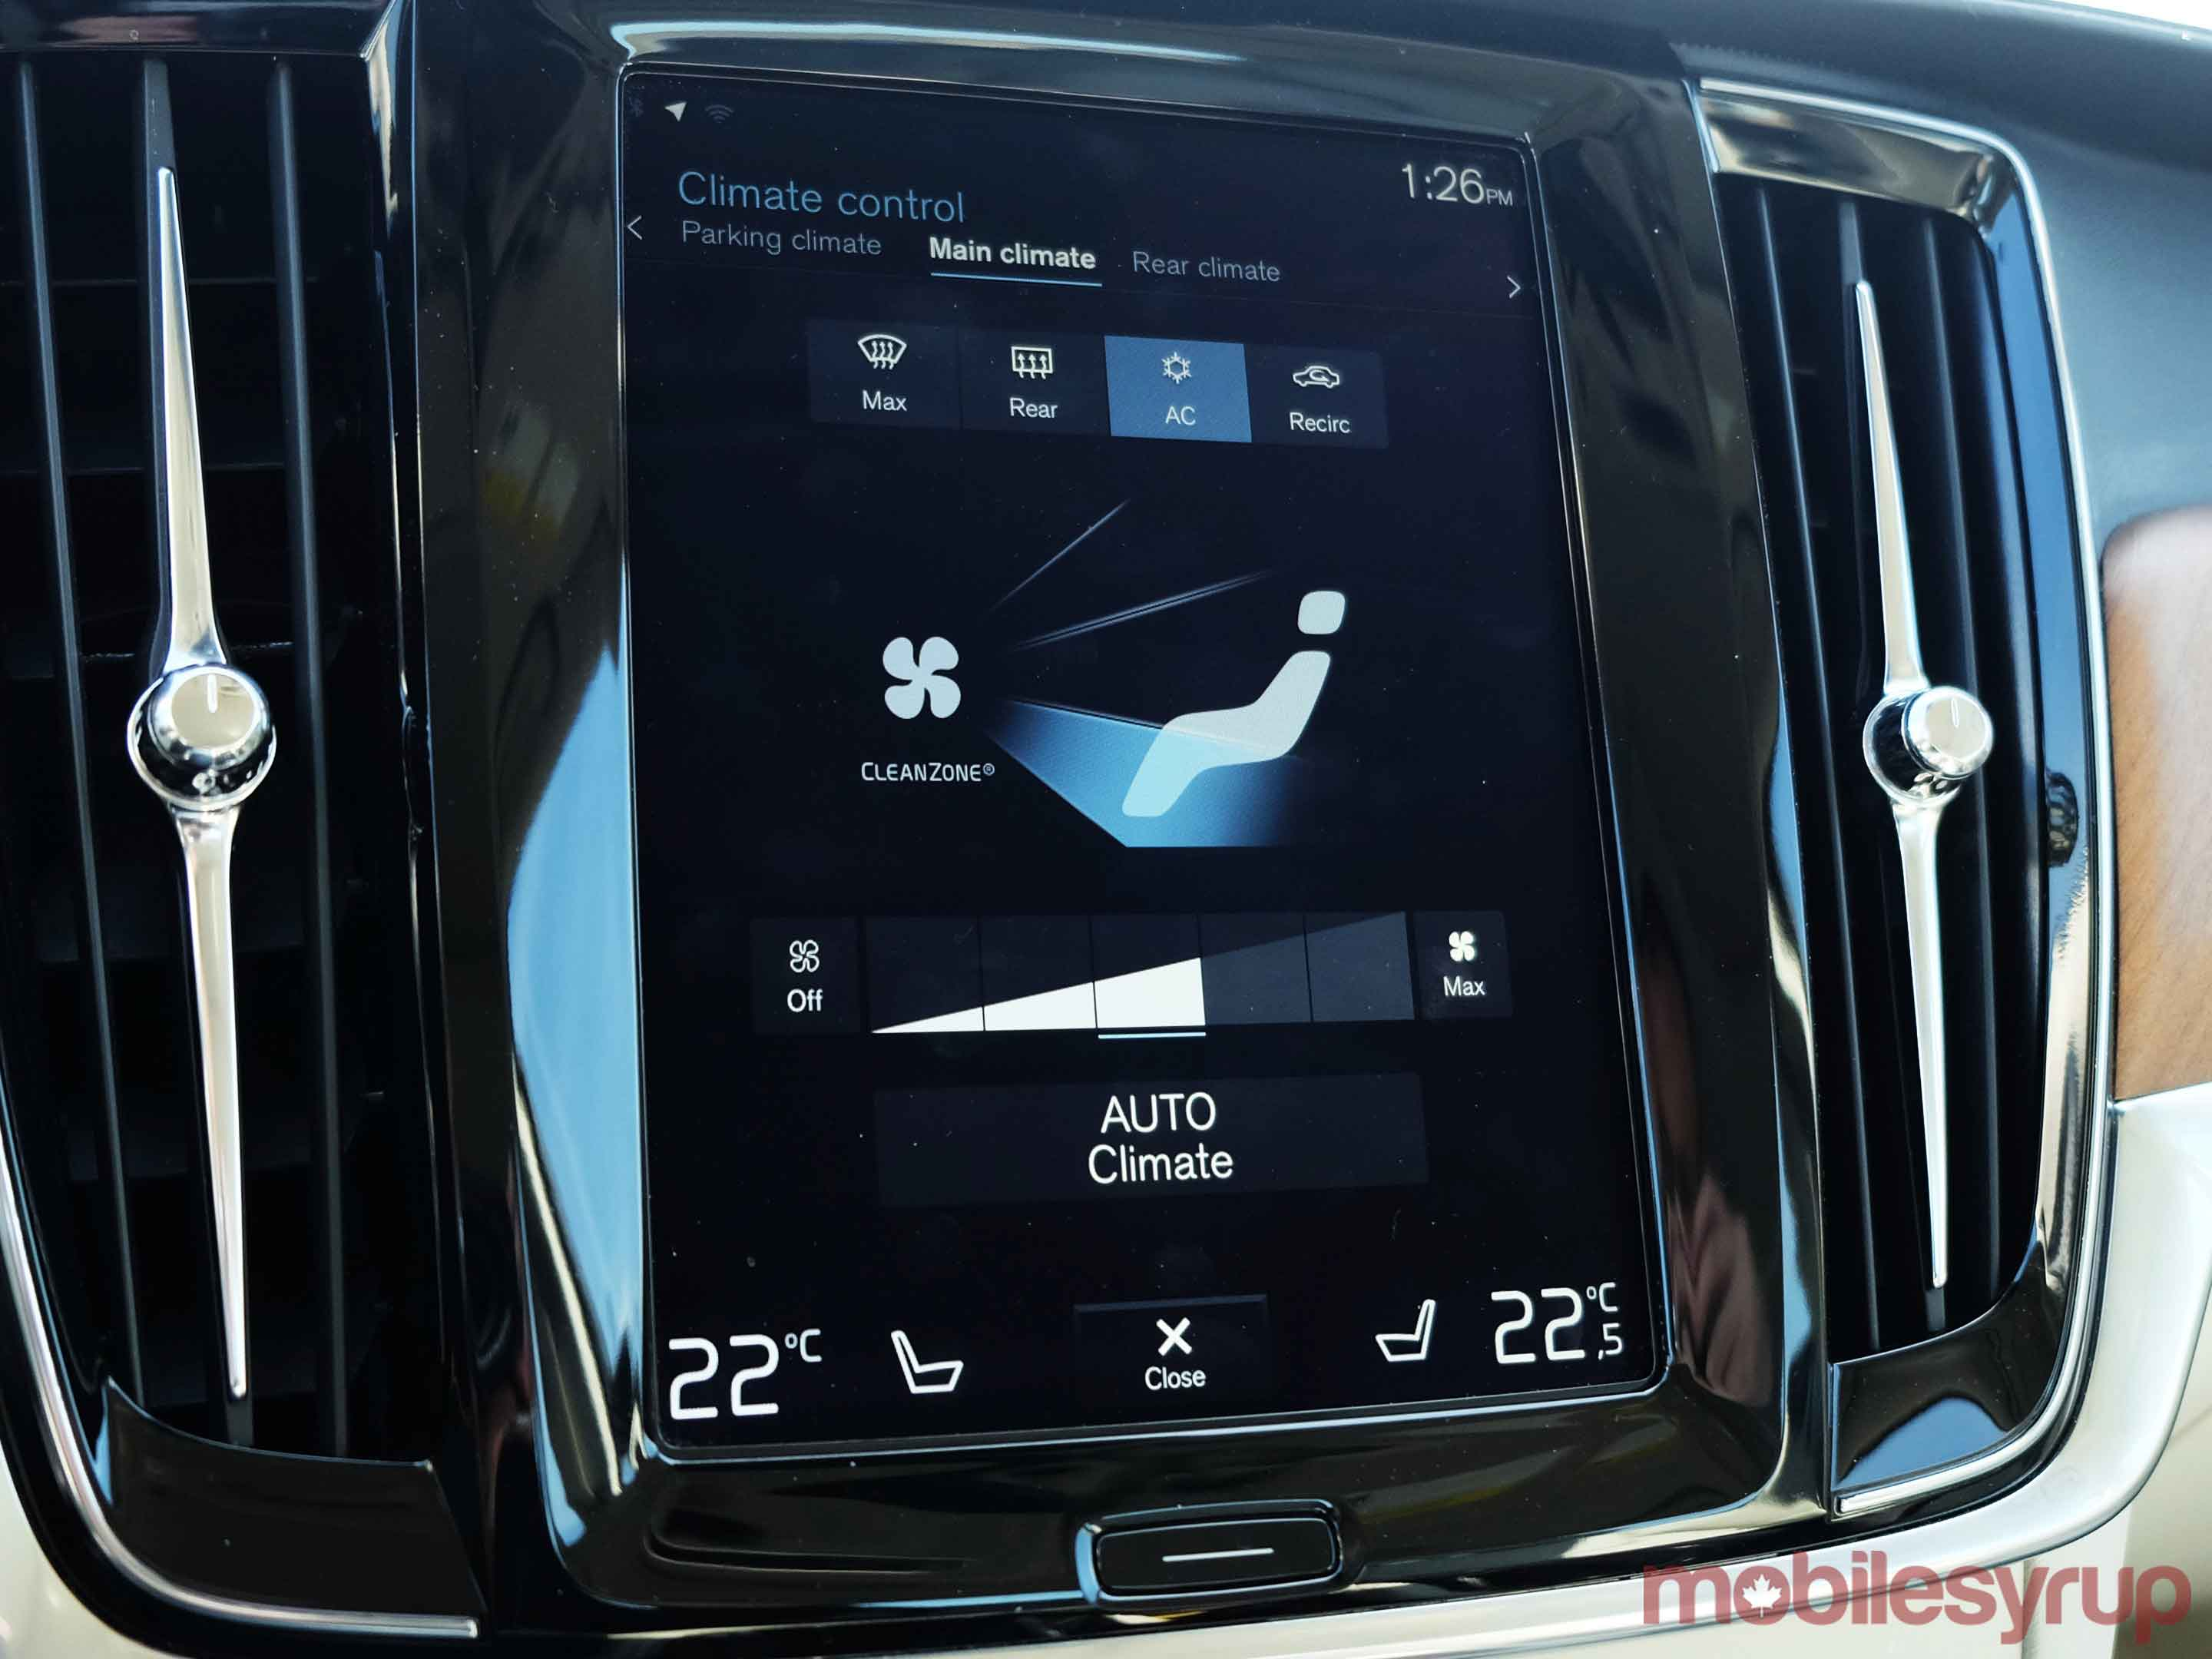 Volve S90 climate control